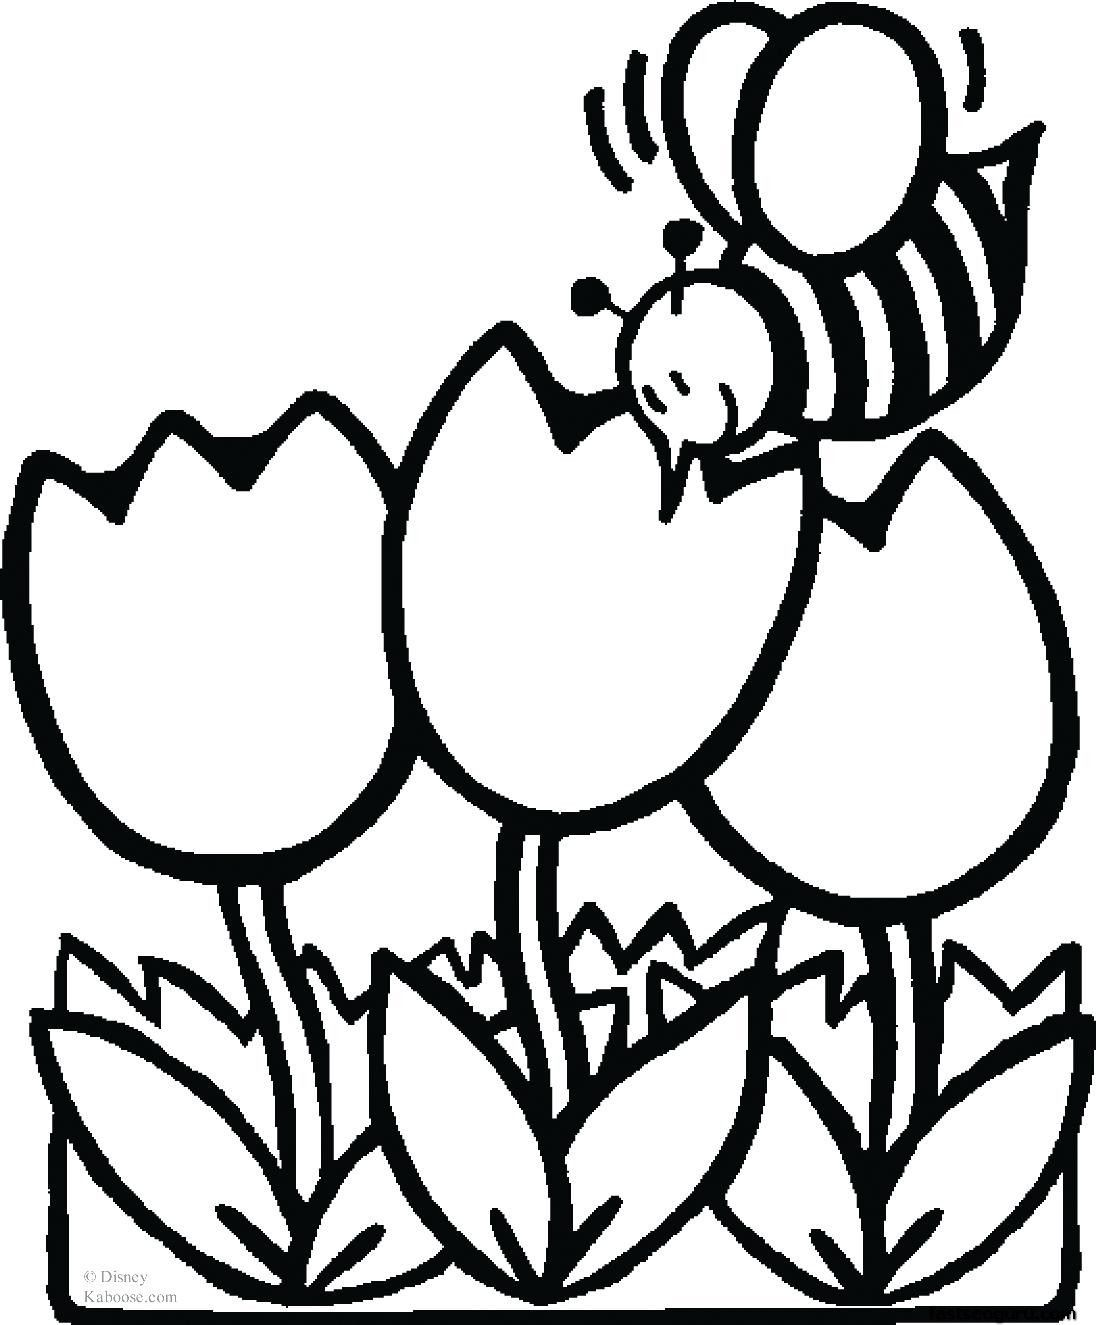 1096x1325 Flower Coloring Pages Animal Print Out Pictures Coloring